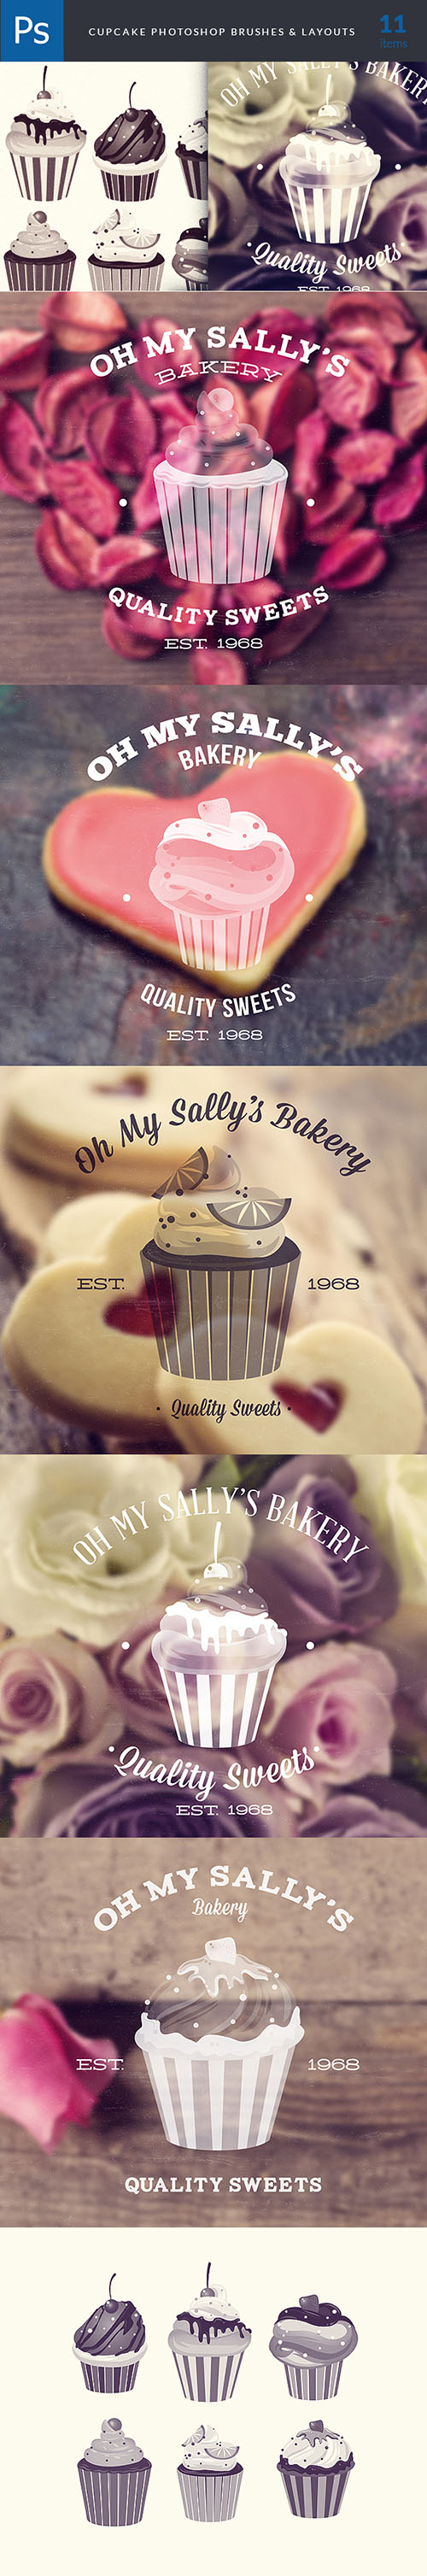 Cupcakes Brushes Photoshop Brushes Pack 1 - Designtnt